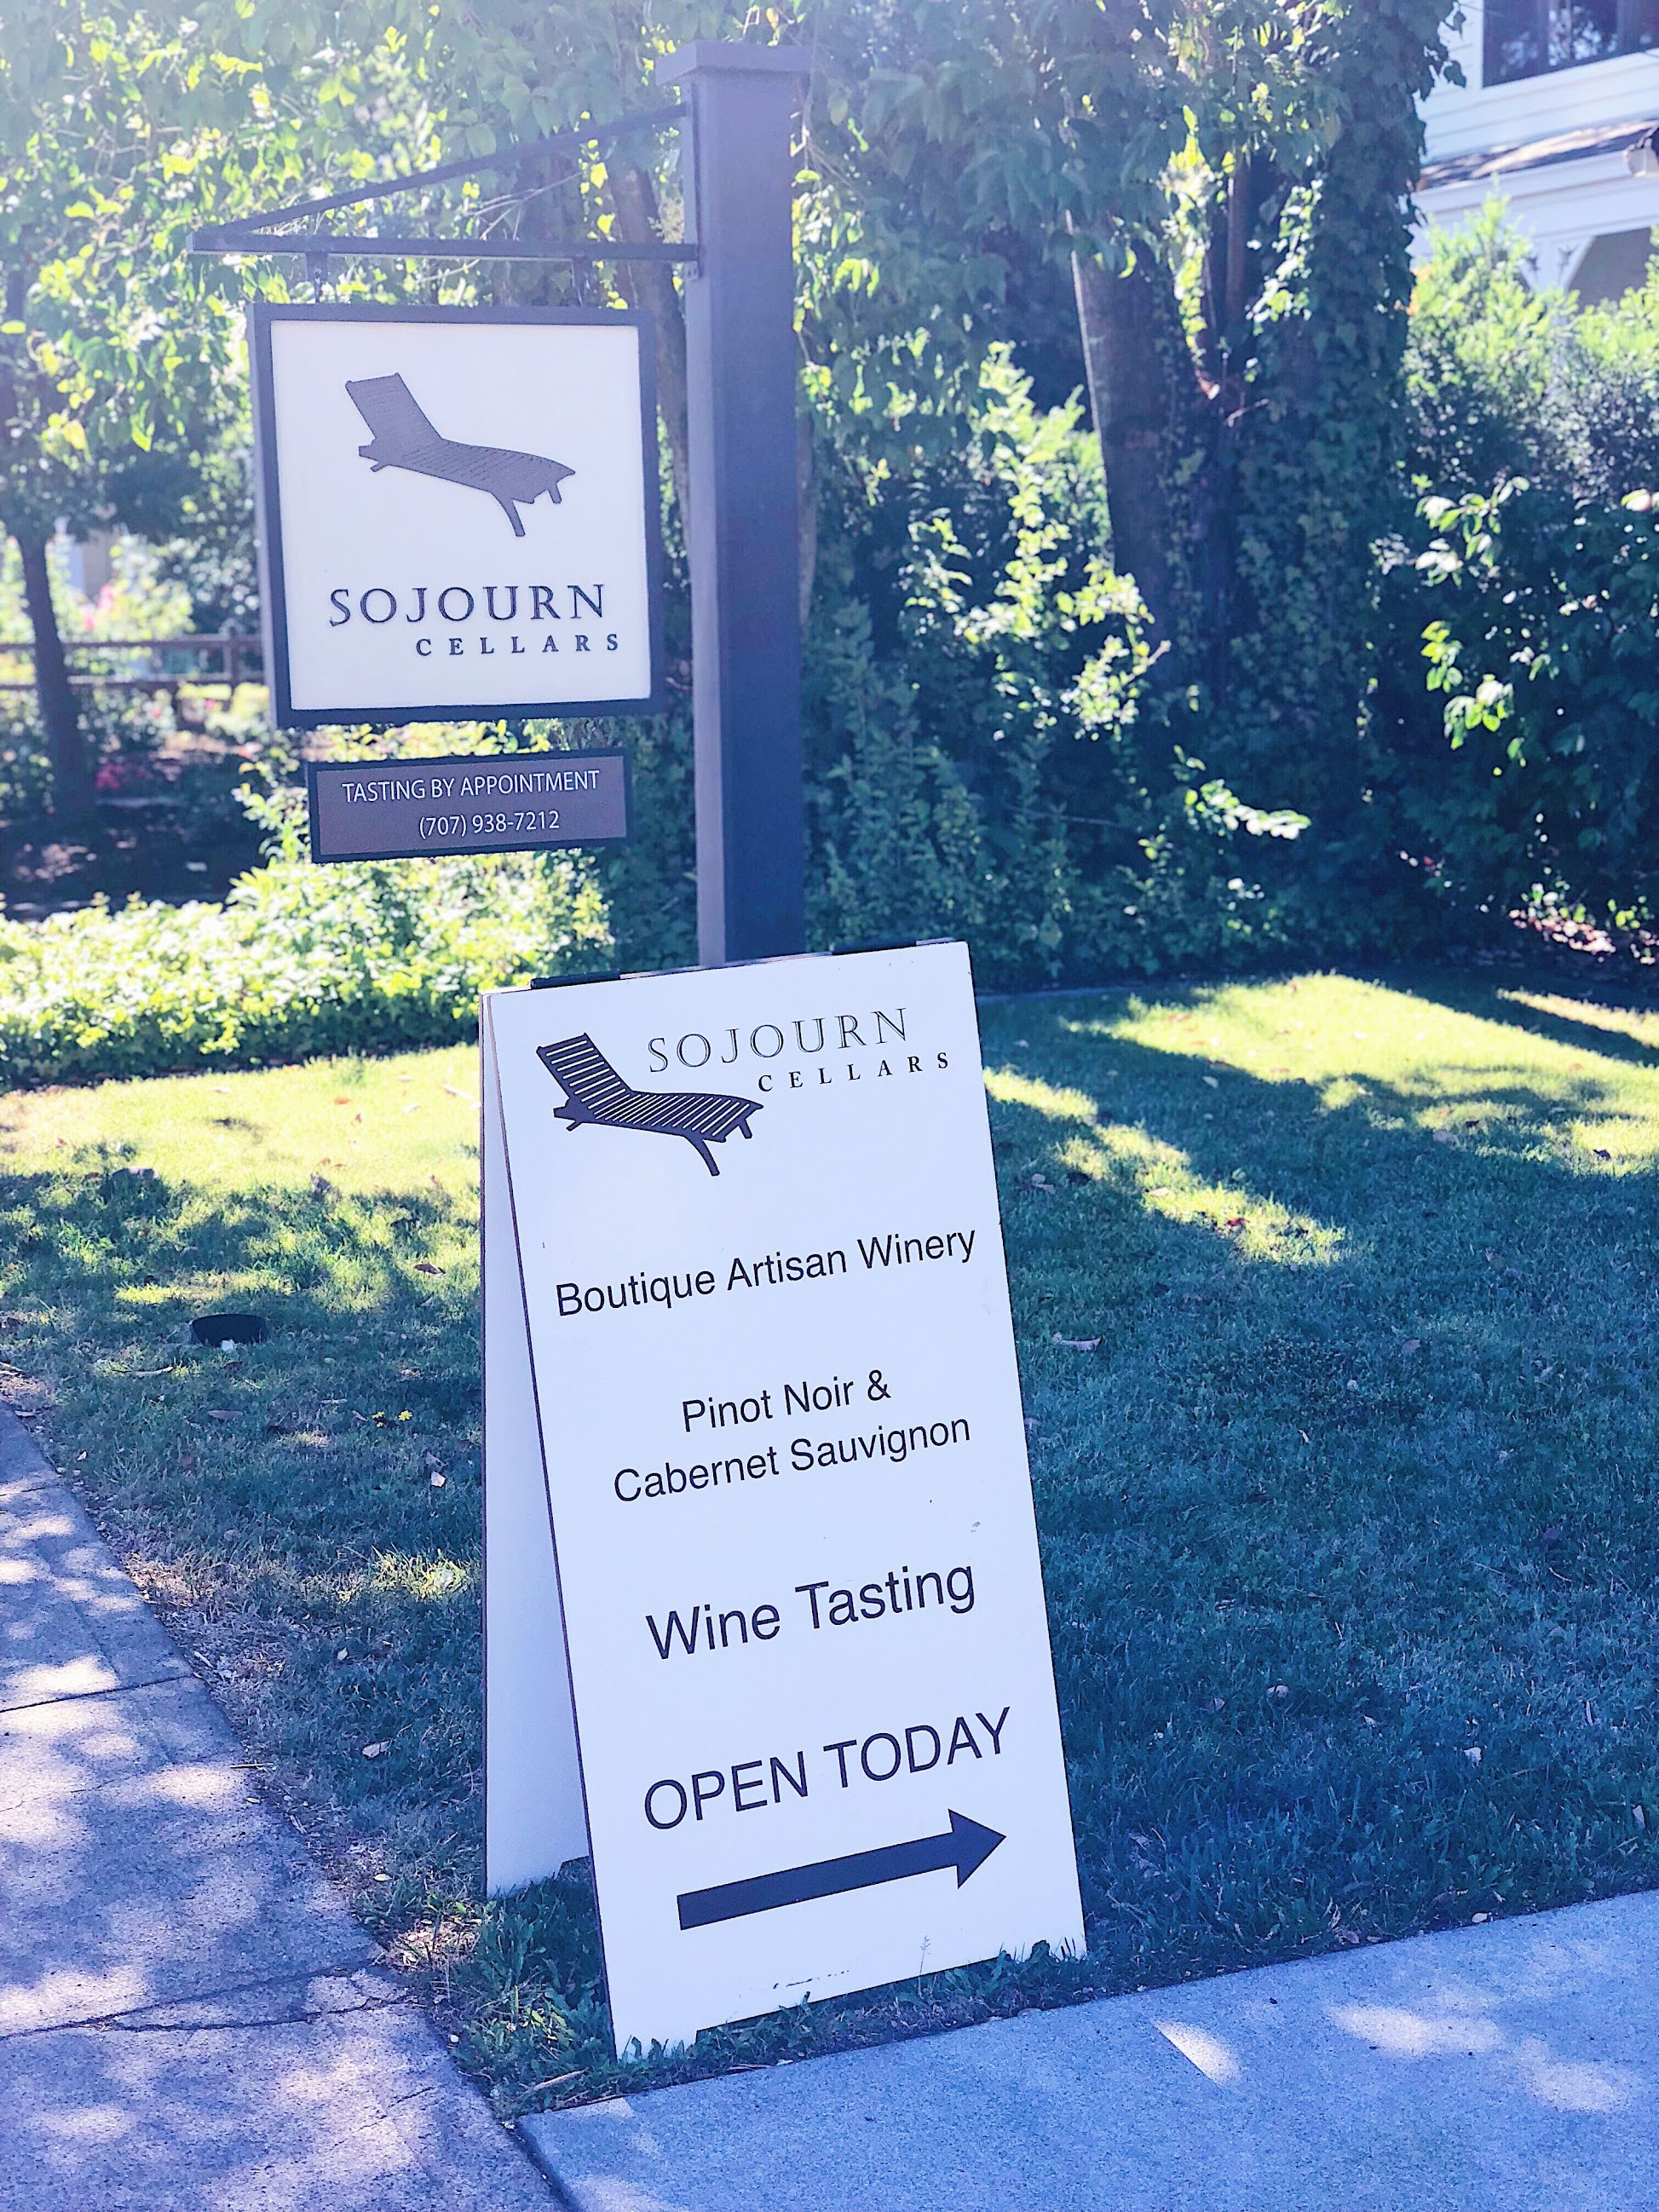 Sojourn Cellars tasting Salon By Appointment